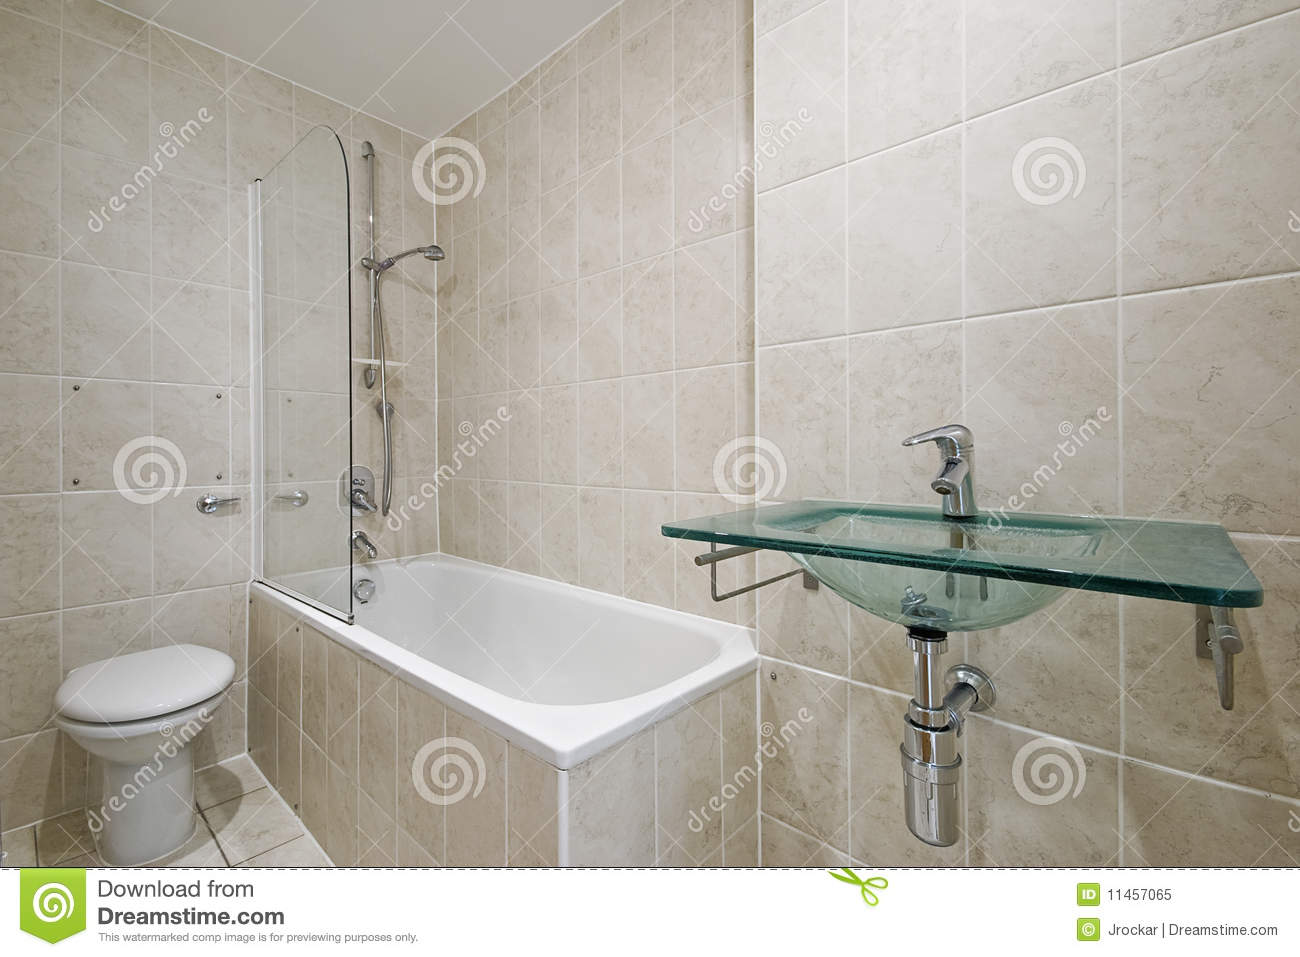 Original If The Ceilings Going To Leak In Any Finished Room Of The House, It Might As Well Be The Bathroom After All  Such As Cracked Grout In The Wall Tile Or A Failed Caulk Joint You Can Test This By Not Using The Showertub For A Few Days To See